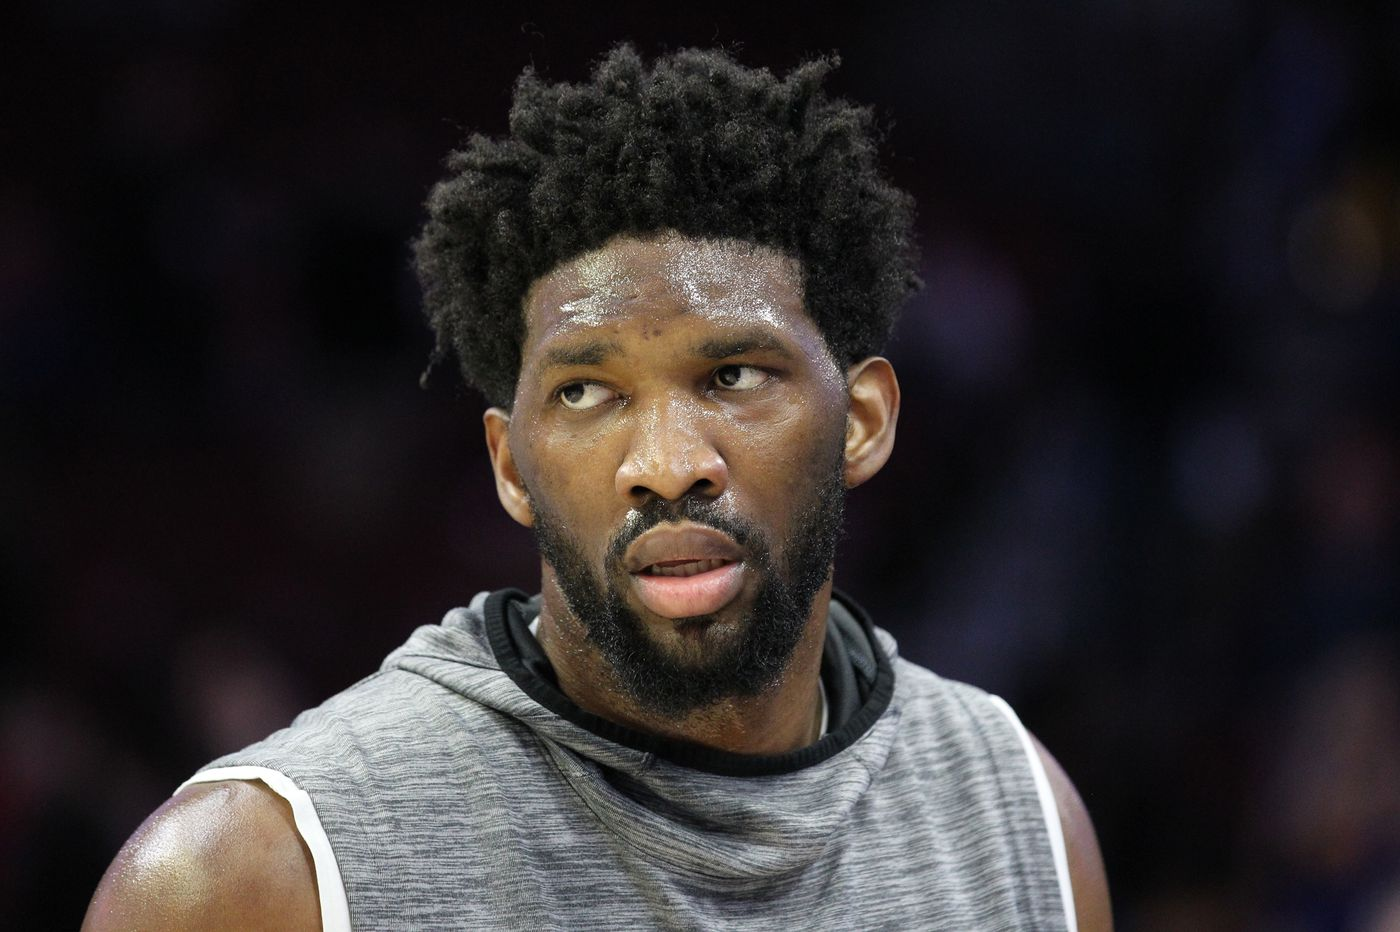 Ready or not, Joel Embiid and his health are big concerns for the Sixers | Mike Sielski